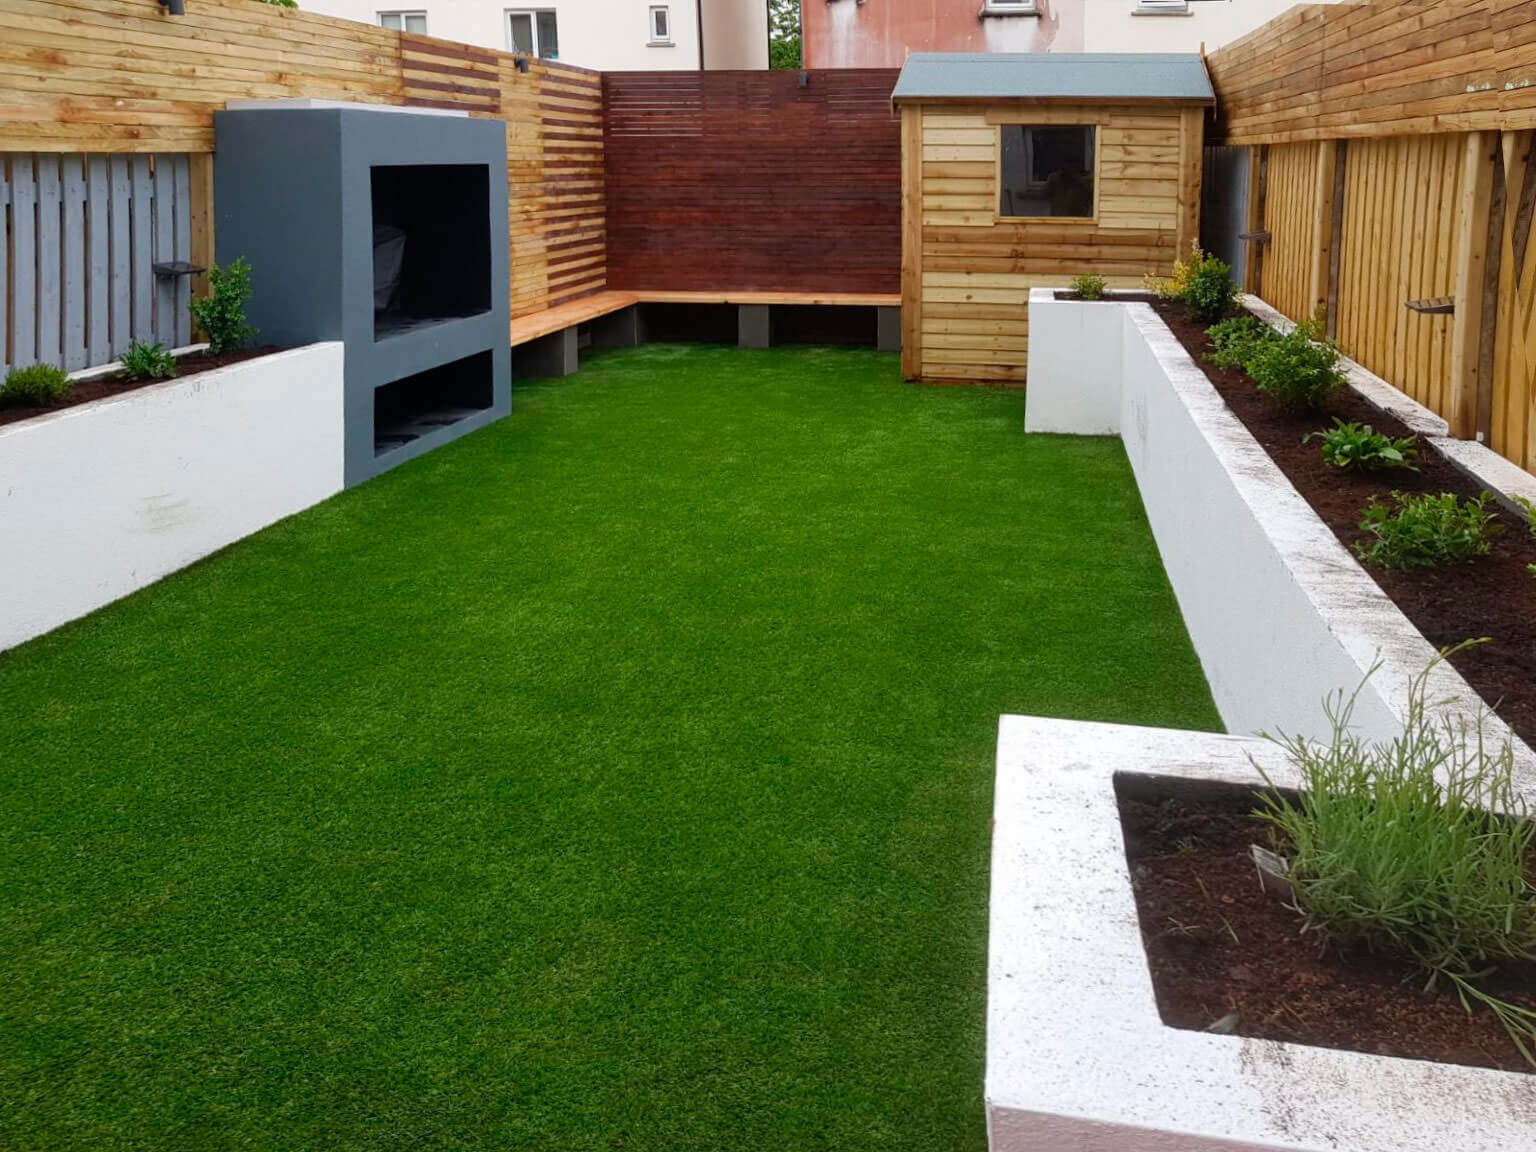 Artificial-Grass-Lawn-walls-and-planting-1-1536x1152